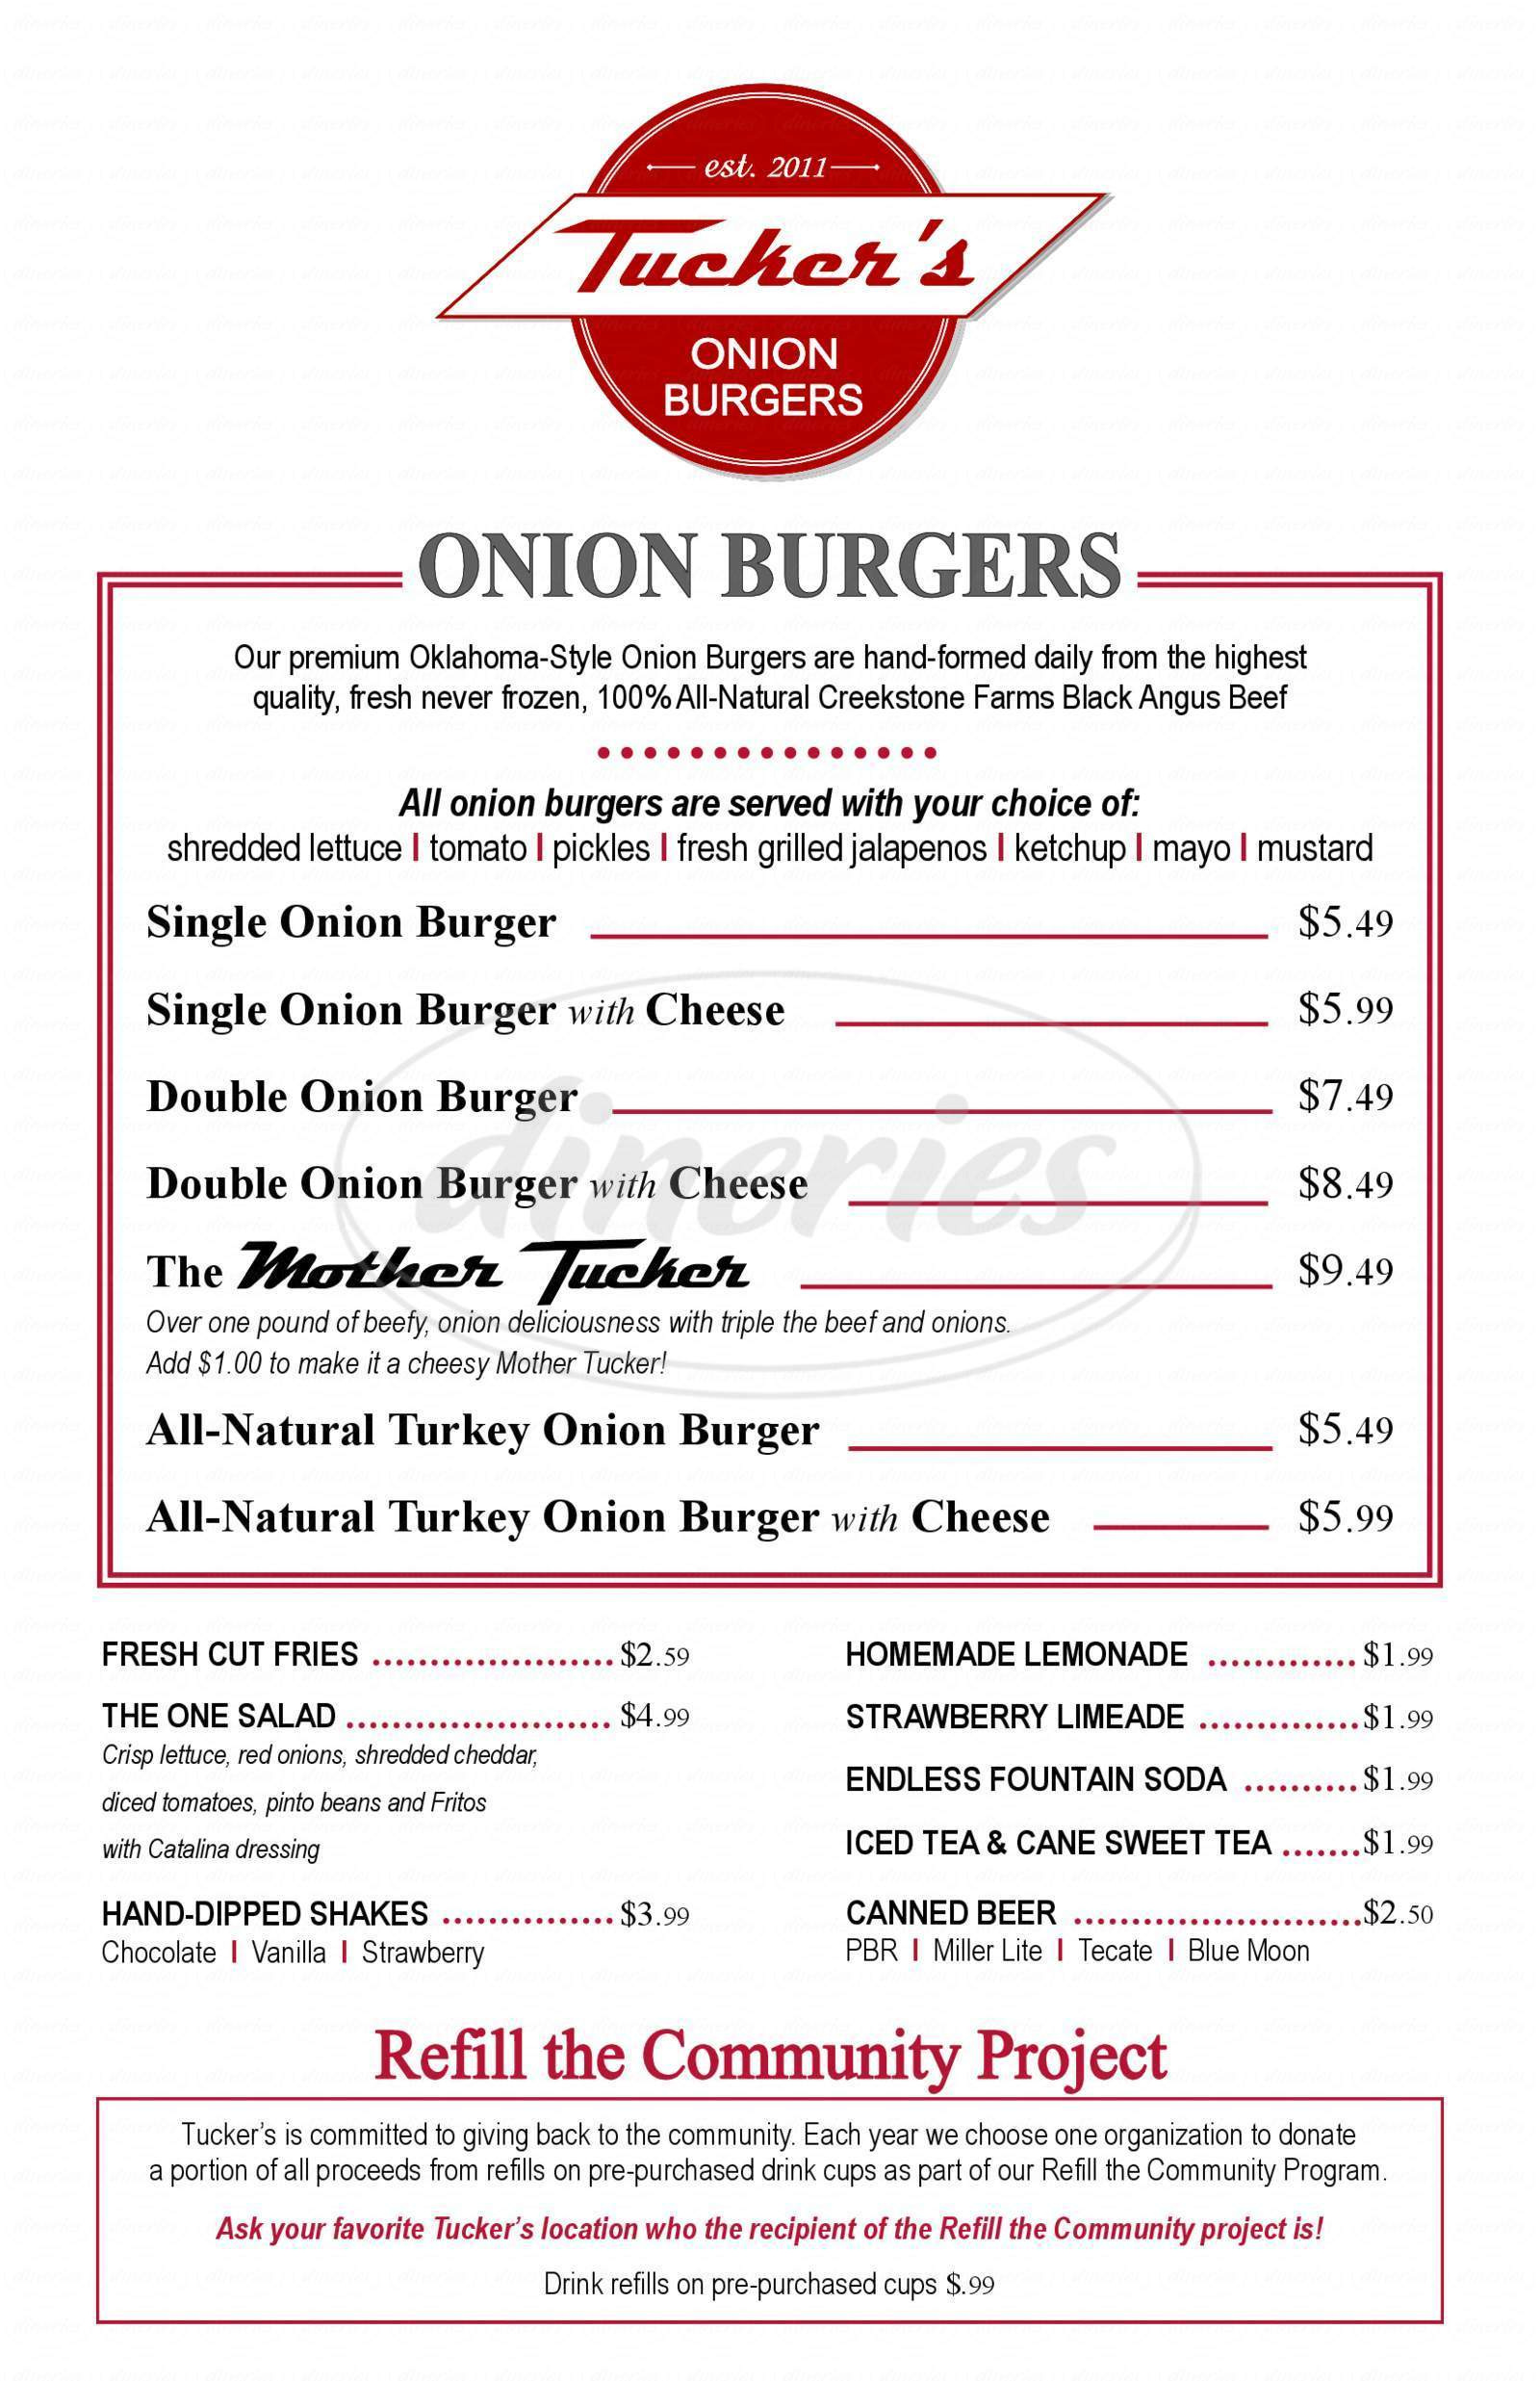 menu for Tuckers Onion Burgers